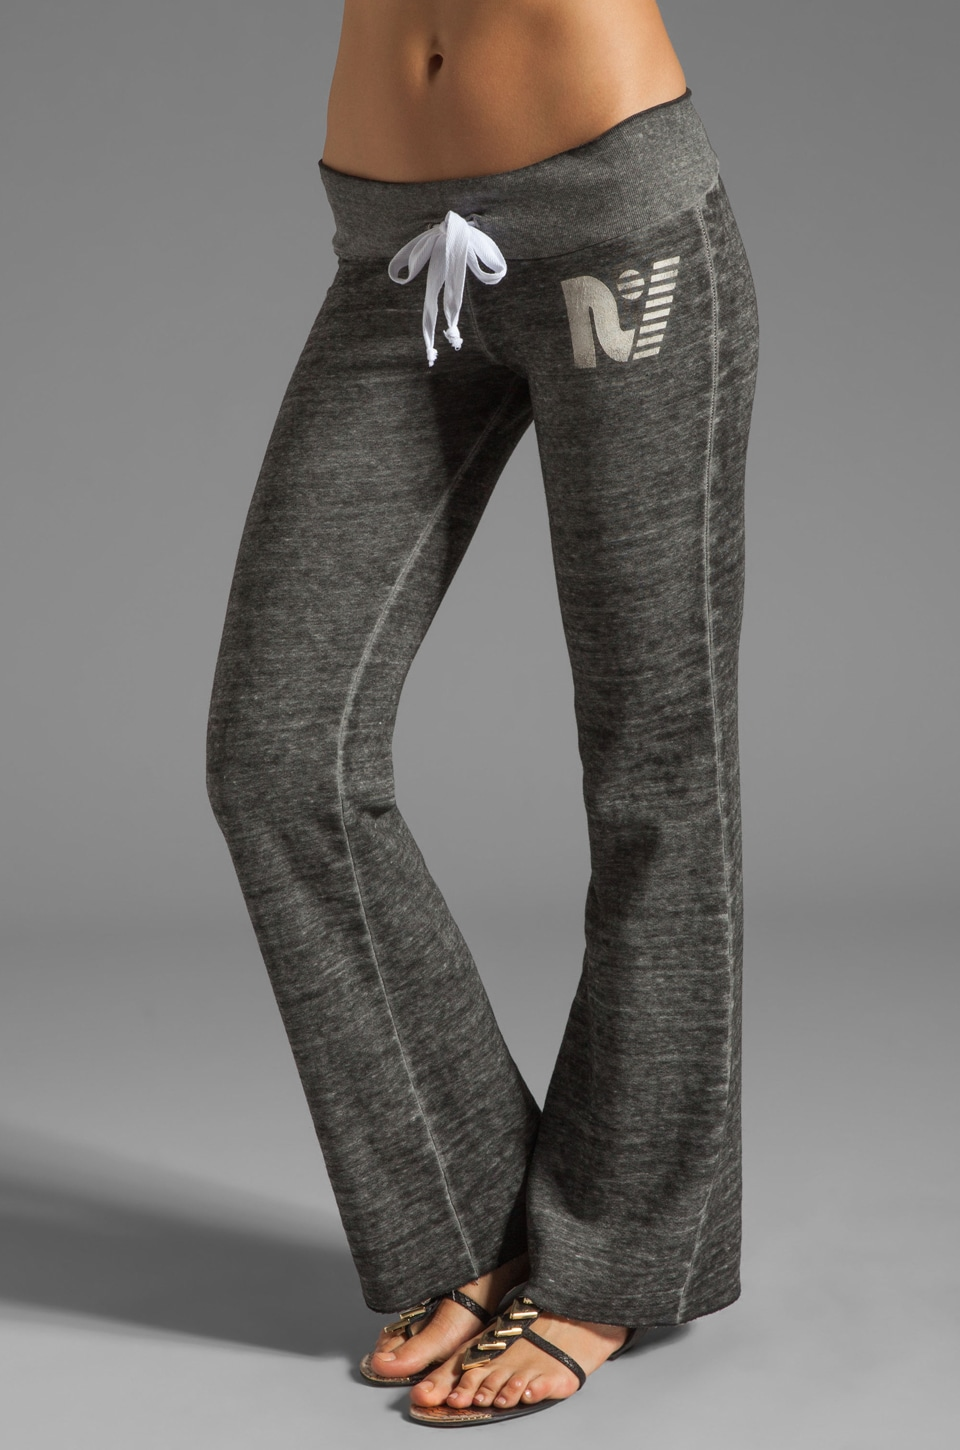 Rebel Yell Misfit Classics Boyfriend Sweats in Heather Grey